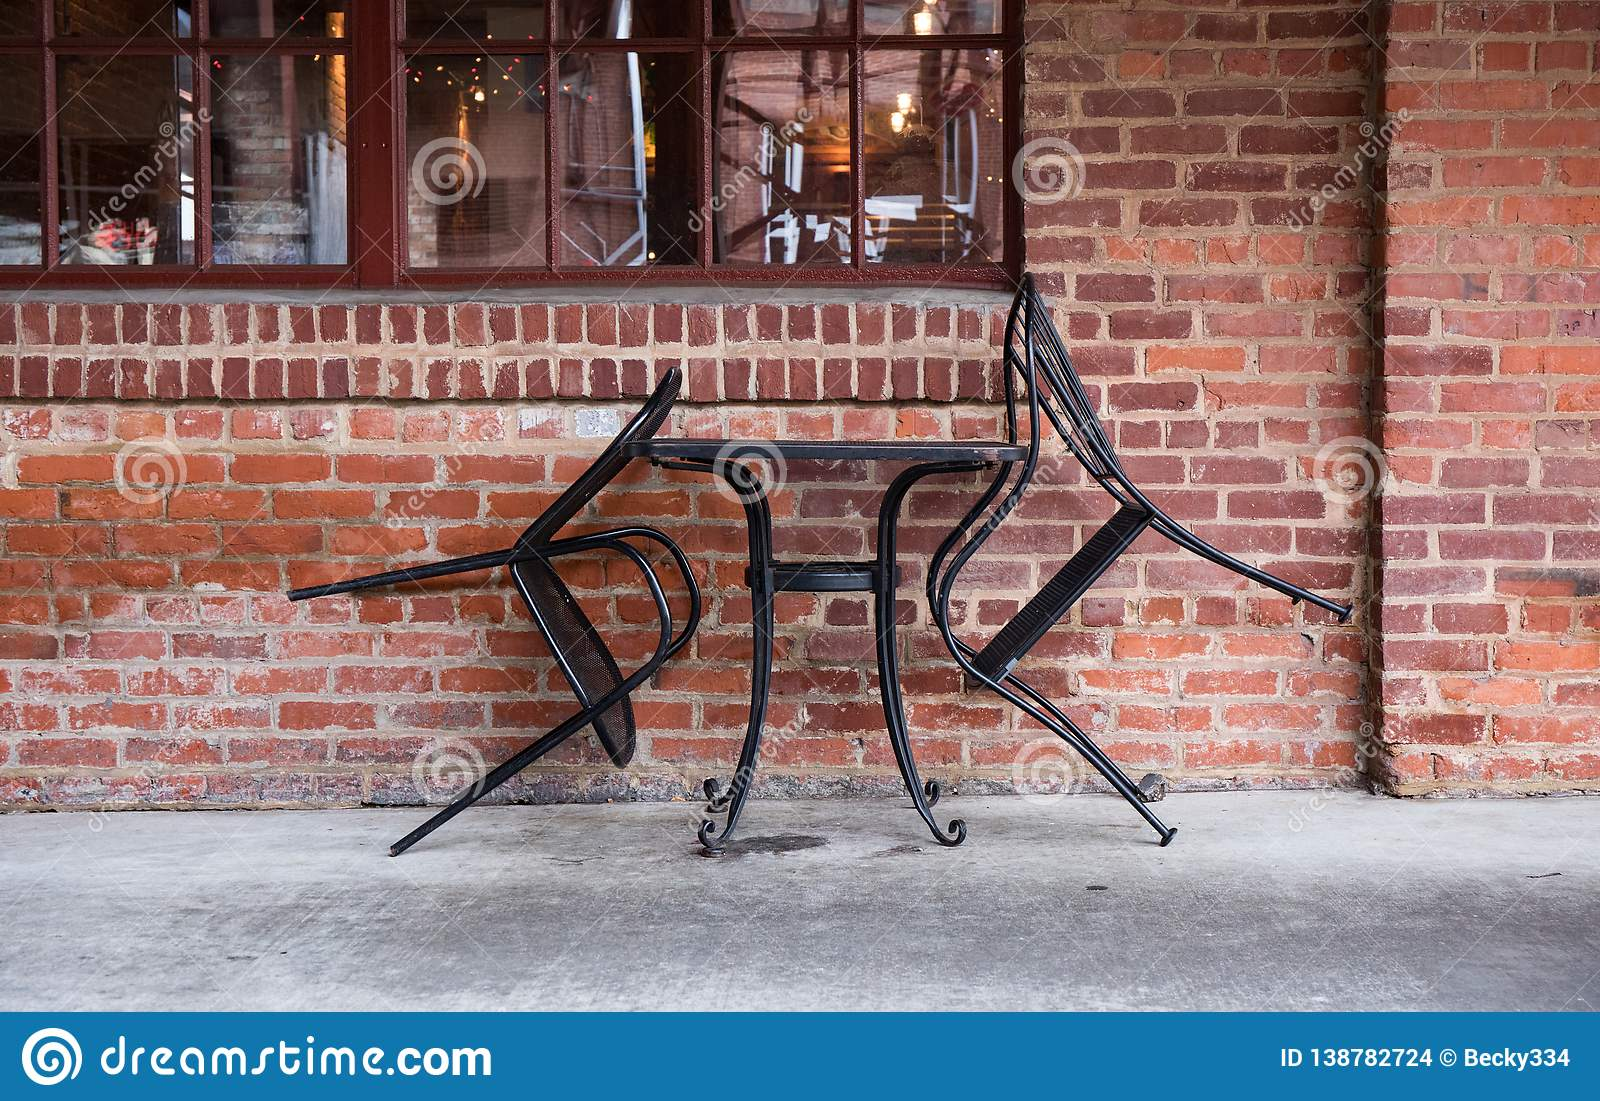 Table for two. Isolated cafe seating.